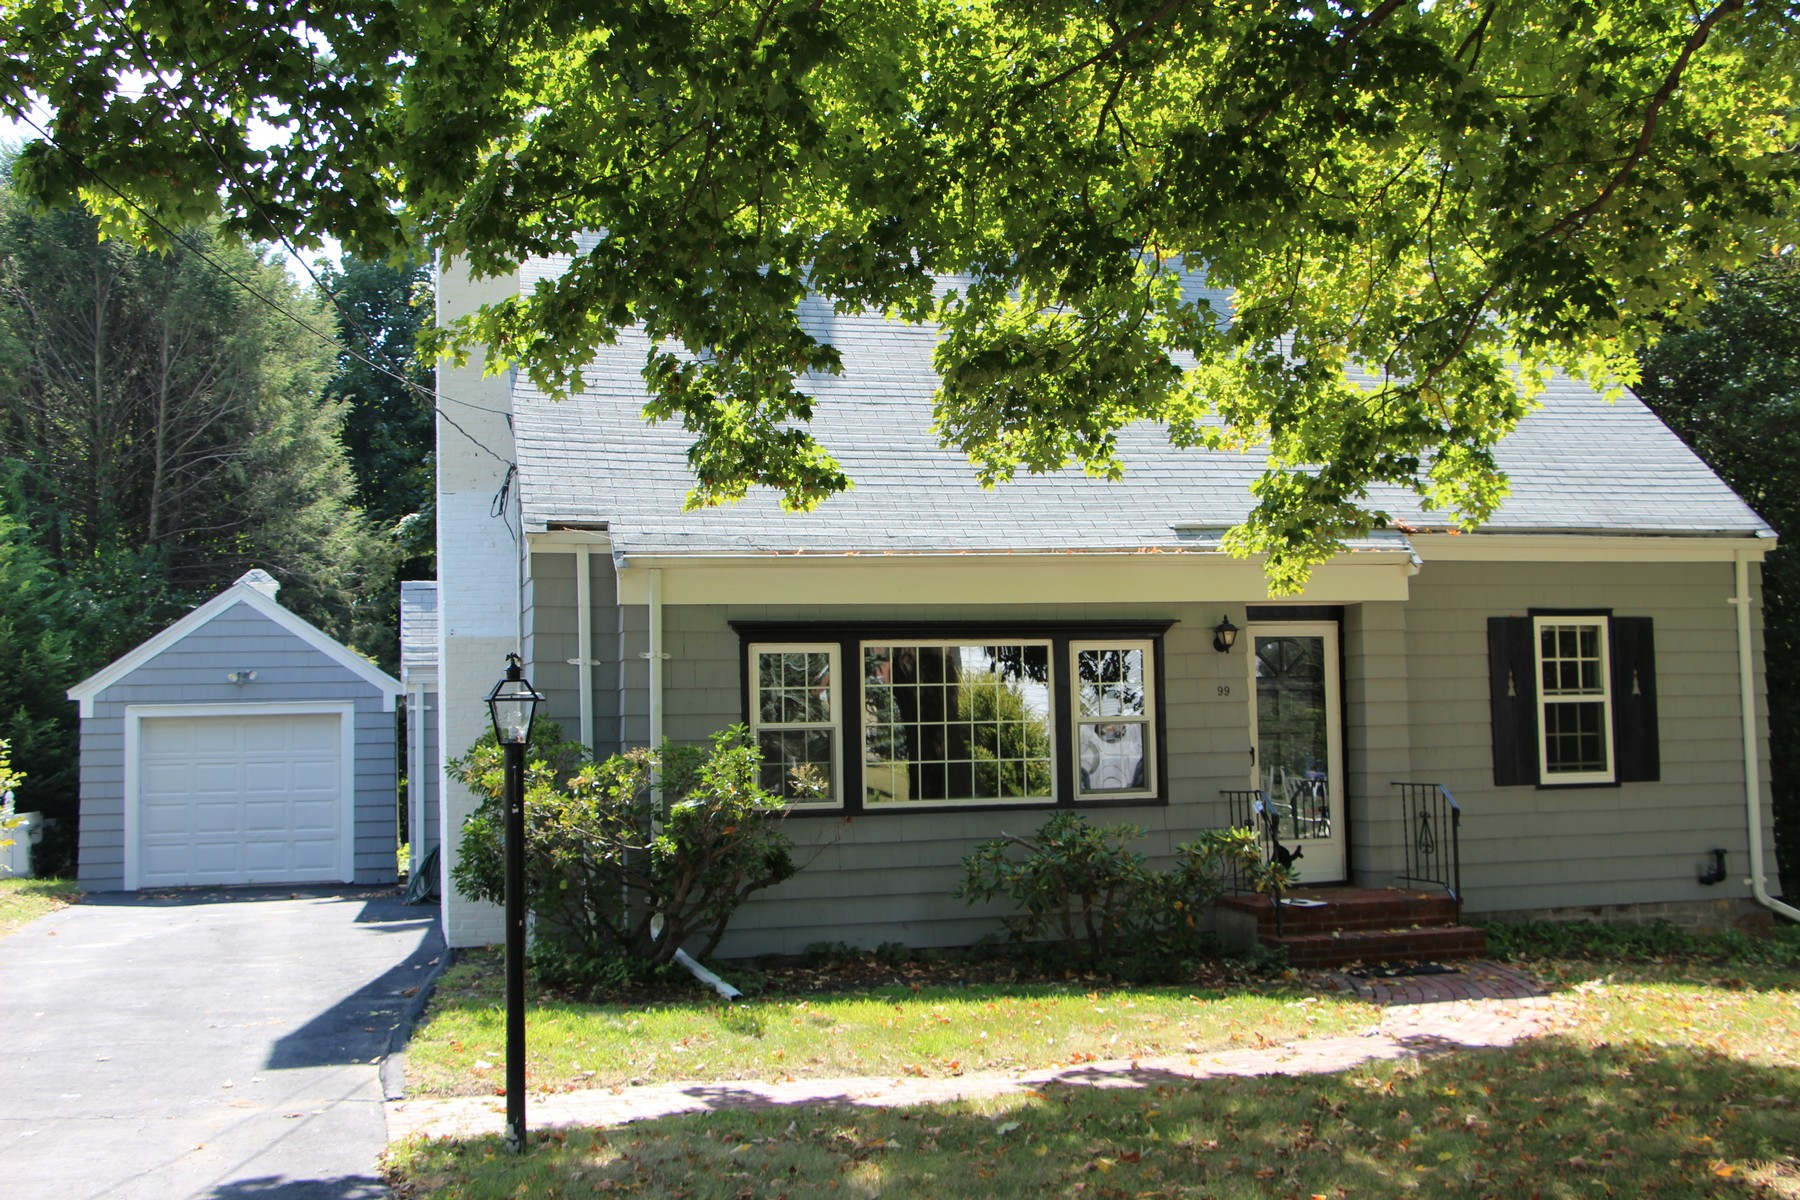 Property For Sale at Trumbull Cape: Great Neighborhood, Great Charm, Great Value!